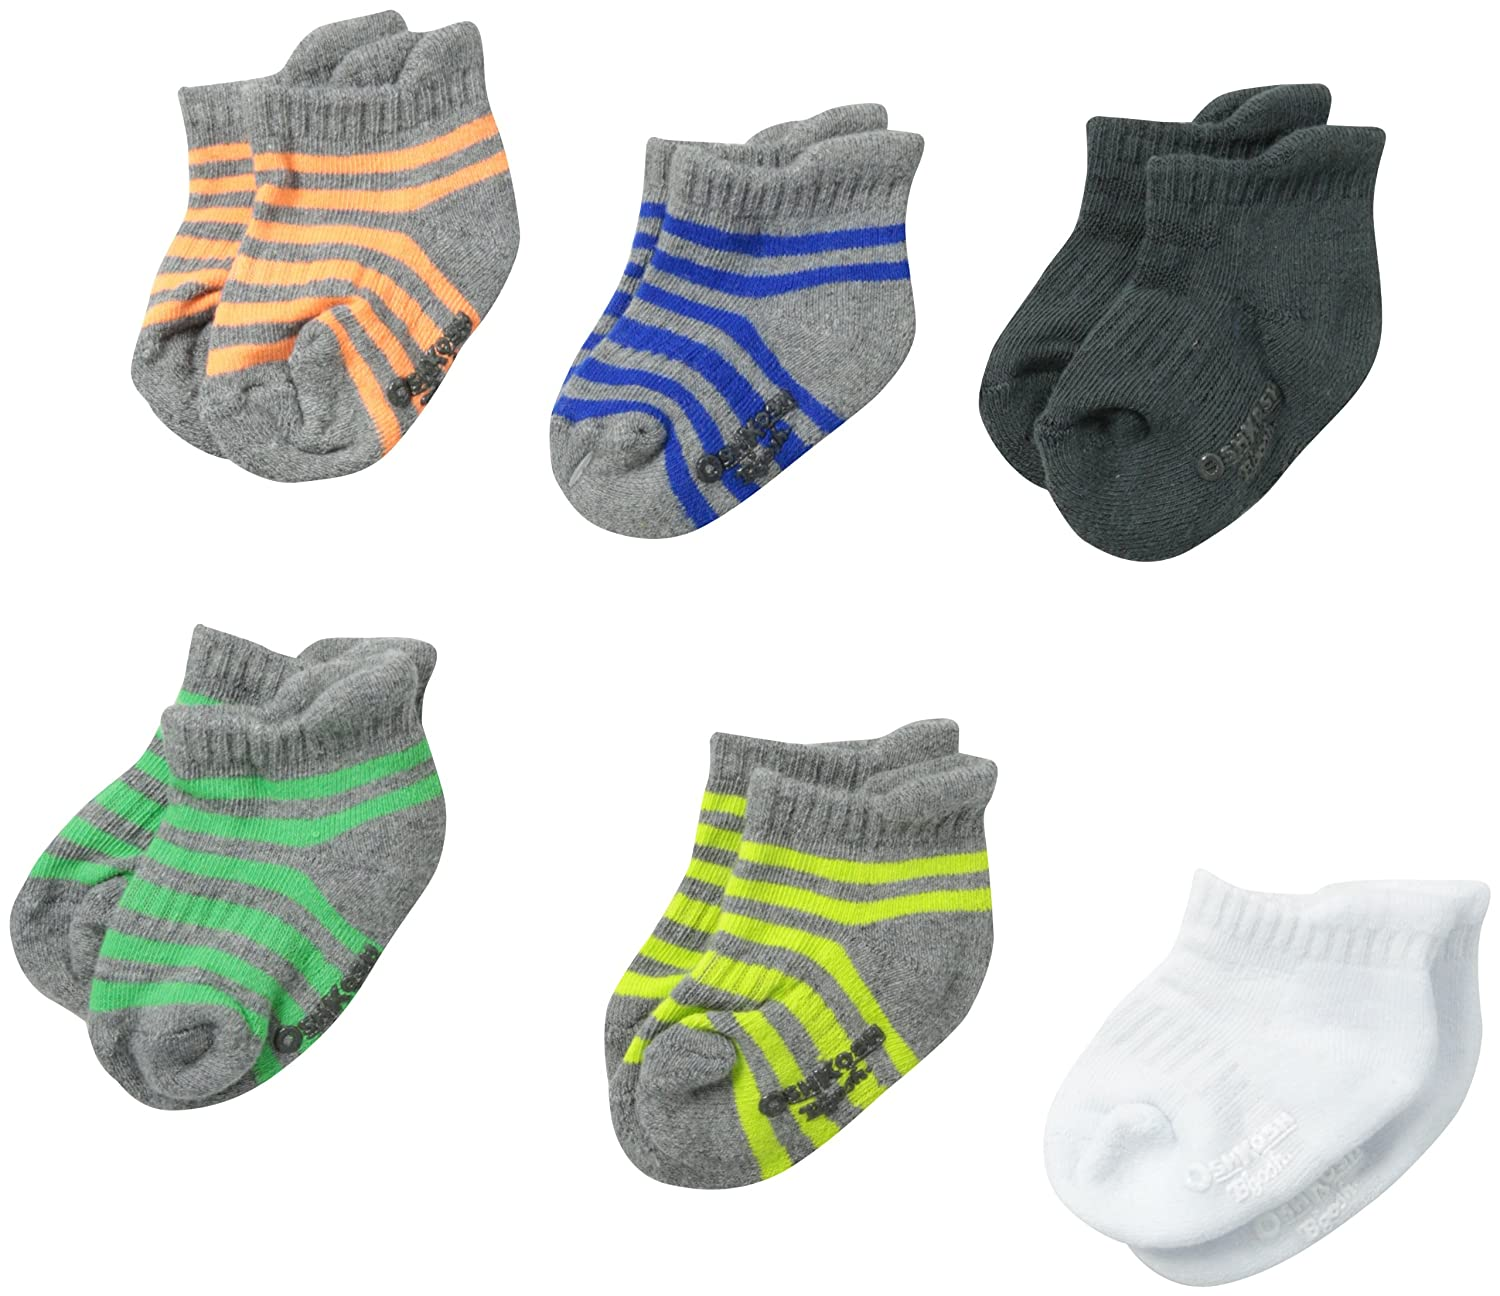 OshKosh B'Gosh Boy Ankle Socks (6 Pack) Sockshosiery OshKosh BGosh Baby